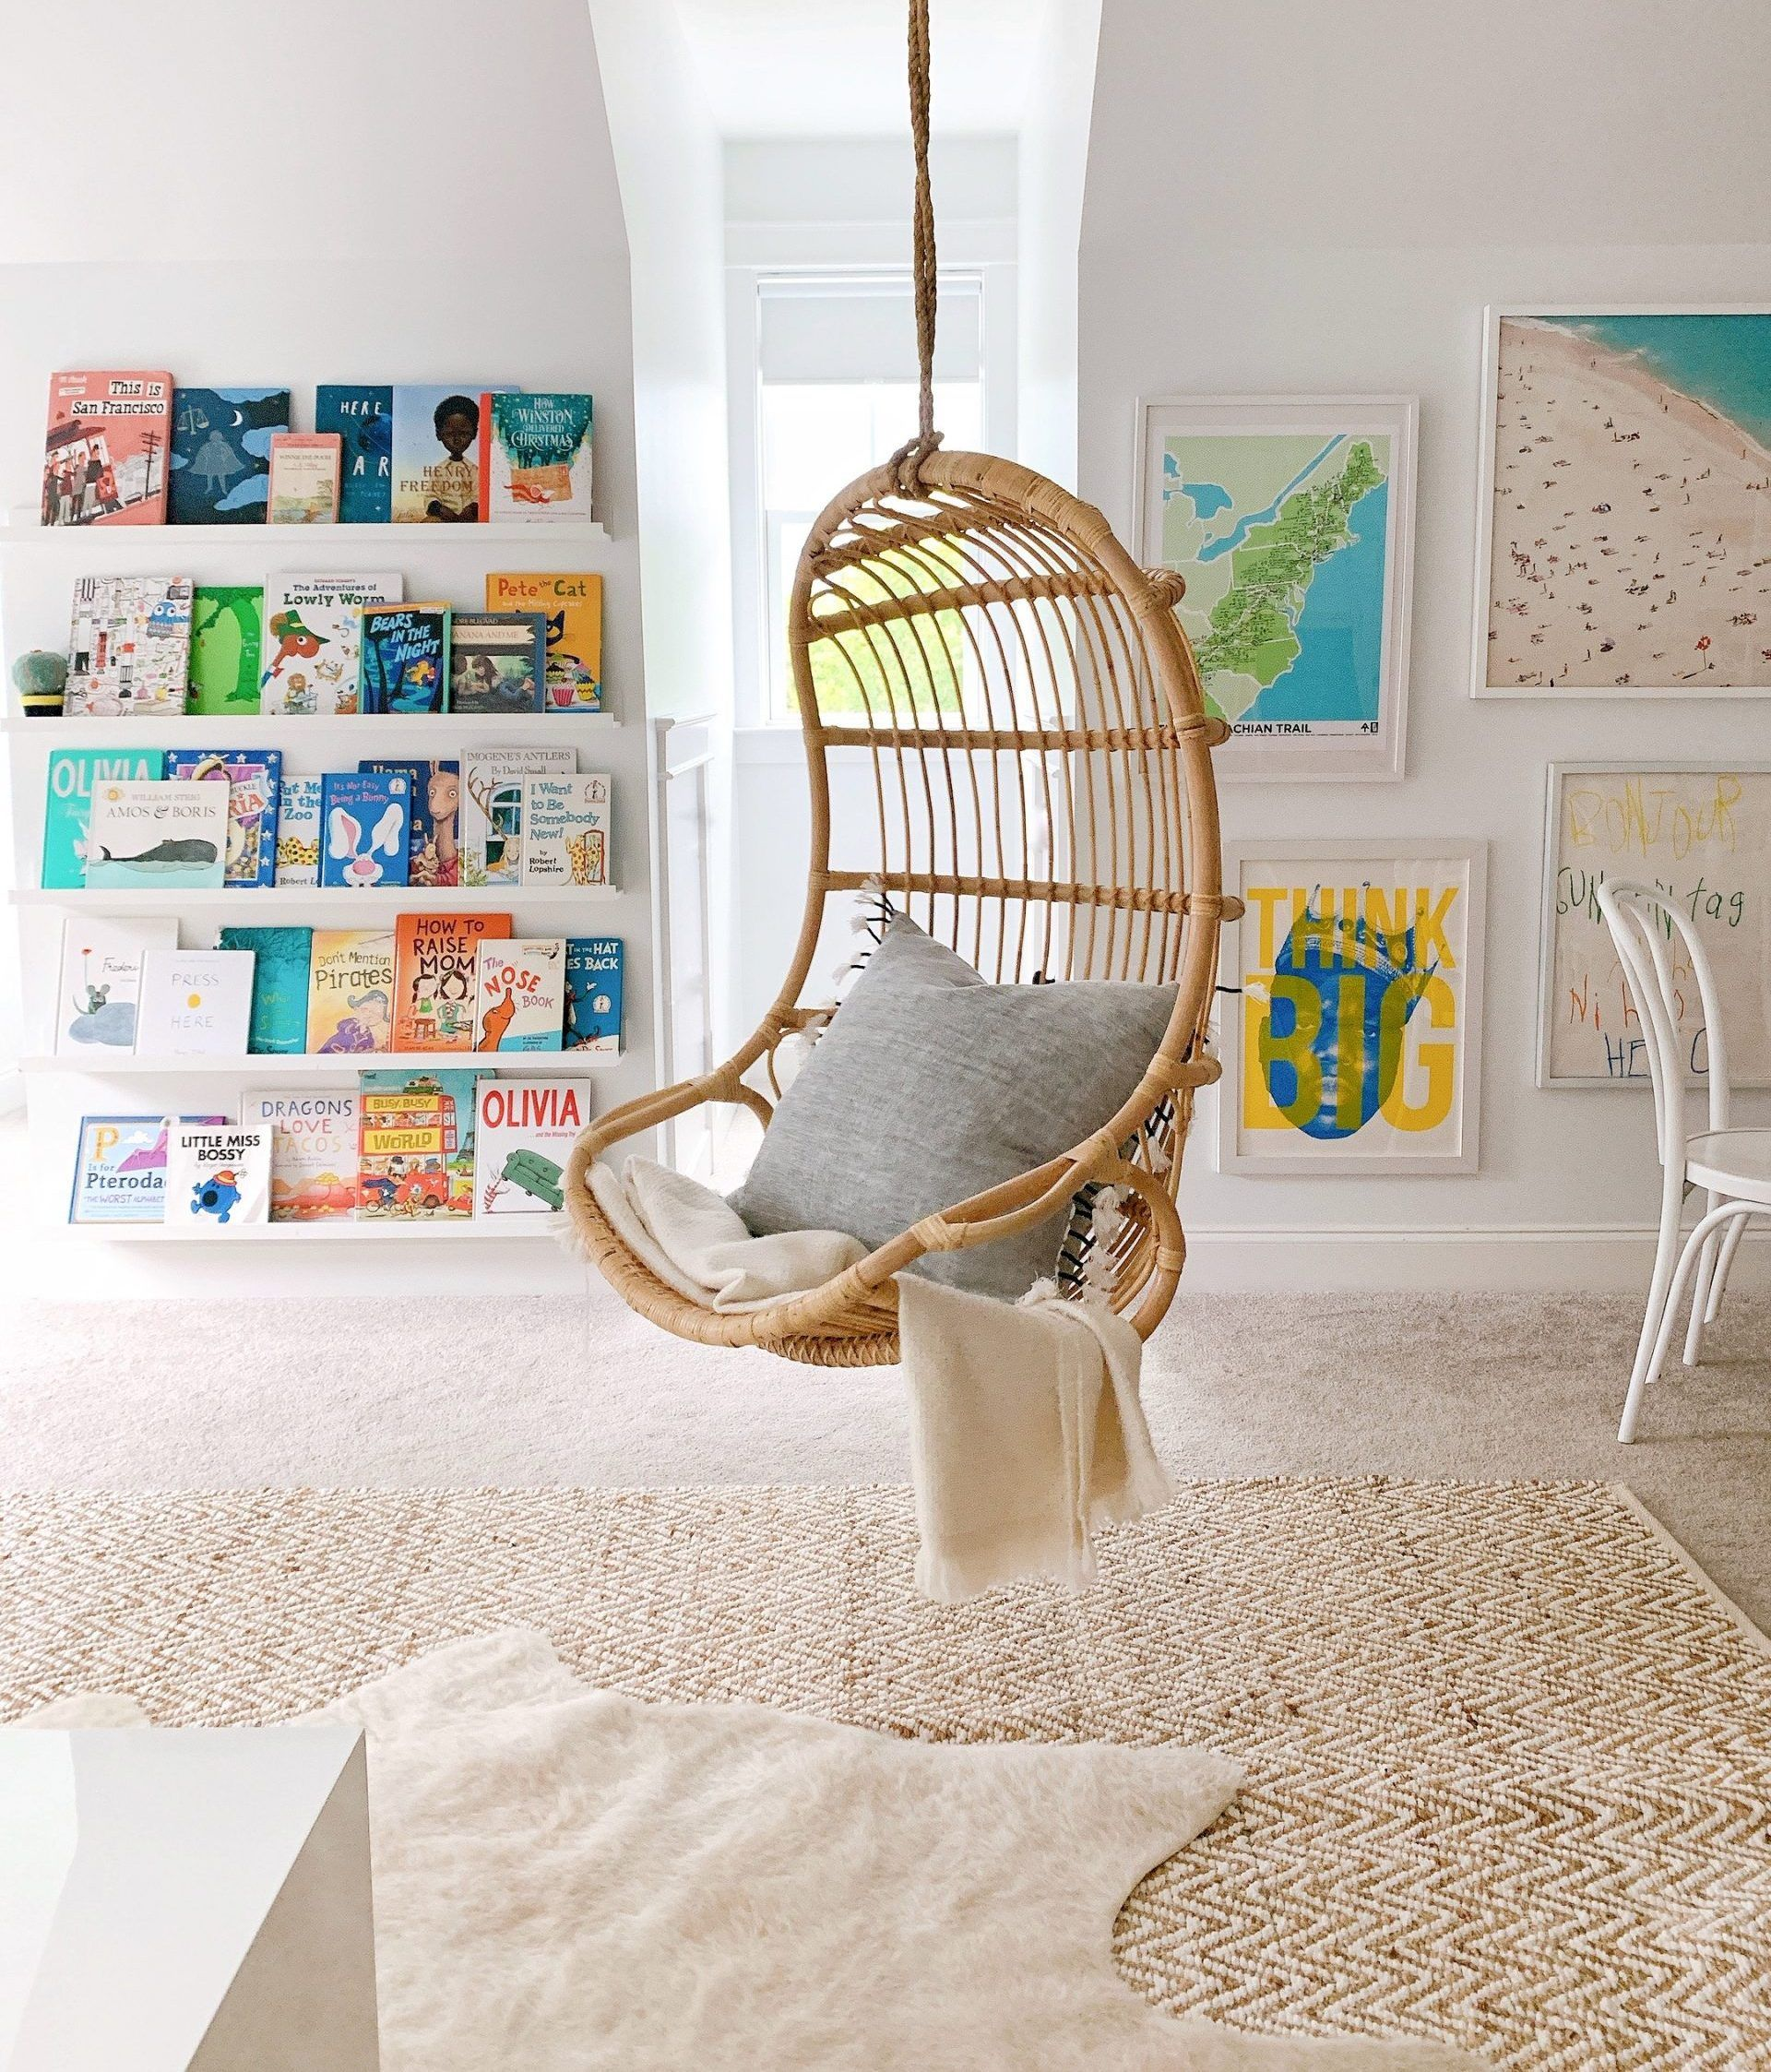 Rattan Chairs In Our Playroom In 2020 Hanging Rattan Chair Hanging Chair Indoor Hanging Rattan